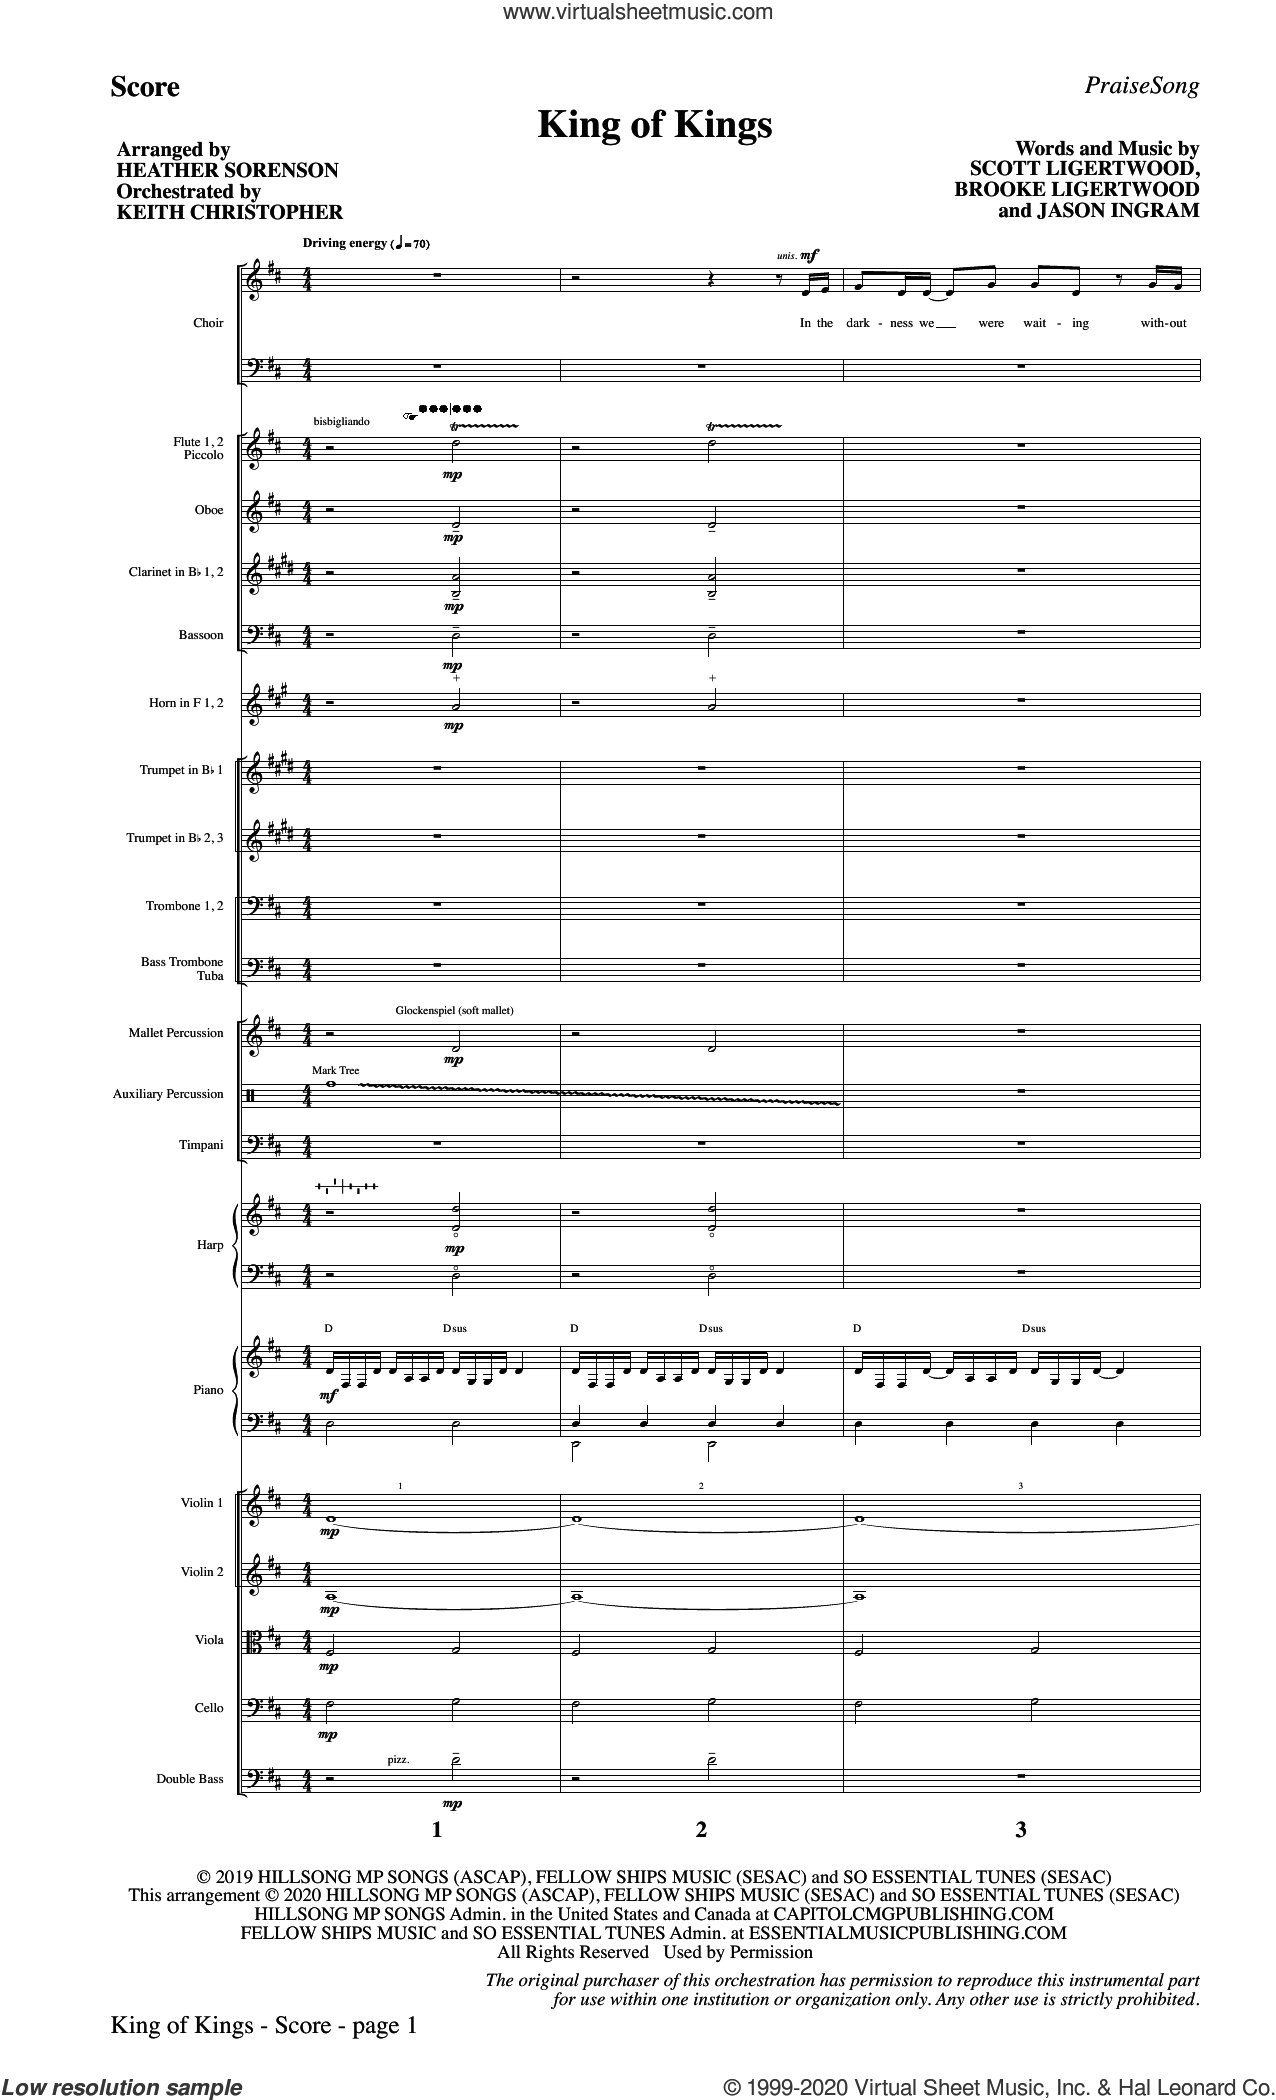 King Of Kings (arr. Heather Sorenson) (COMPLETE) sheet music for orchestra/band by Heather Sorenson, Brooke Ligertwood, Hillsong Worship, Jason Ingram and Scott Ligertwood, intermediate skill level